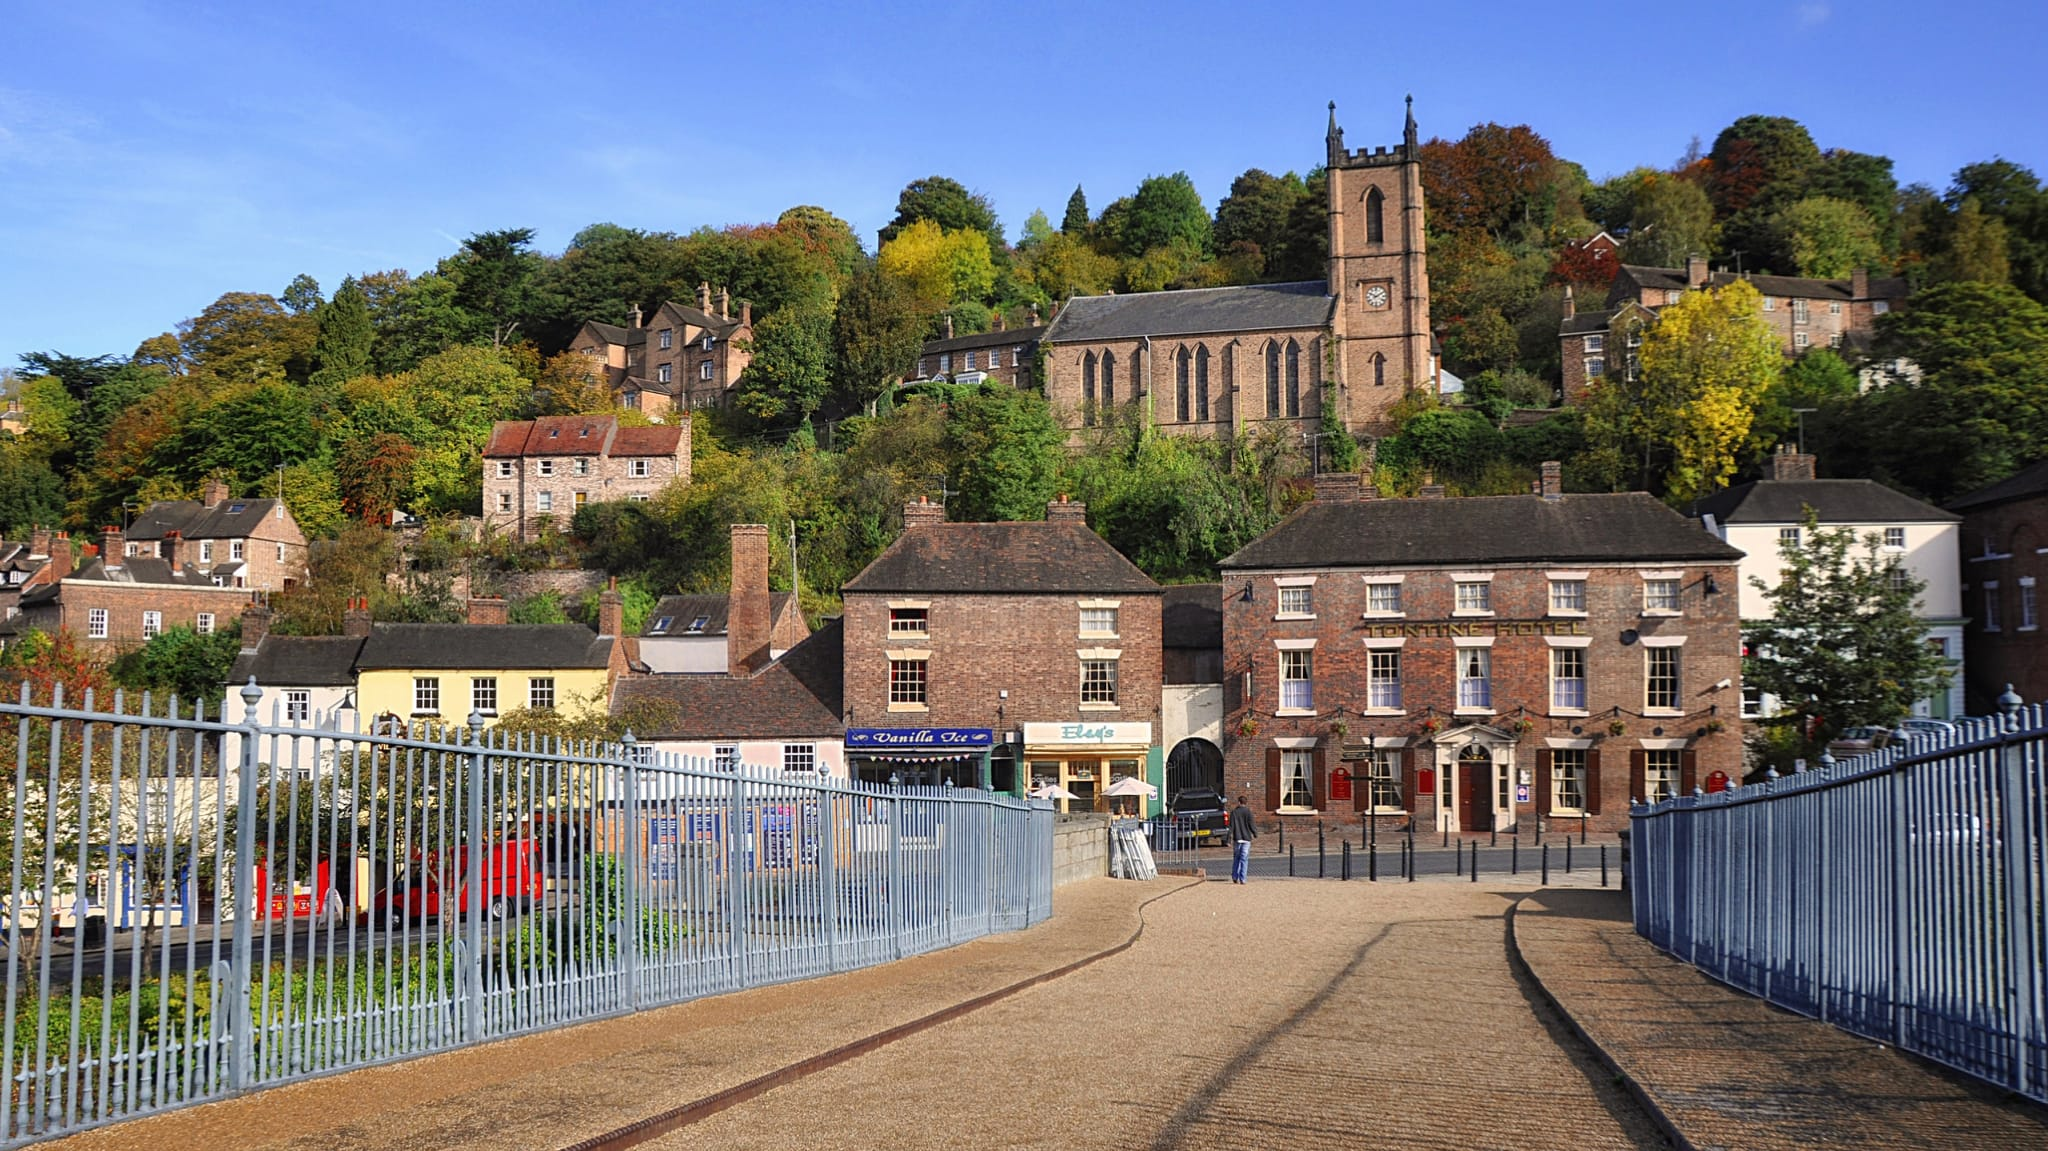 The beautiful town of Ironbridge in Shropshire, UK. Photo by Helen Simonsson, licensed CC-BY-SA-3.0.